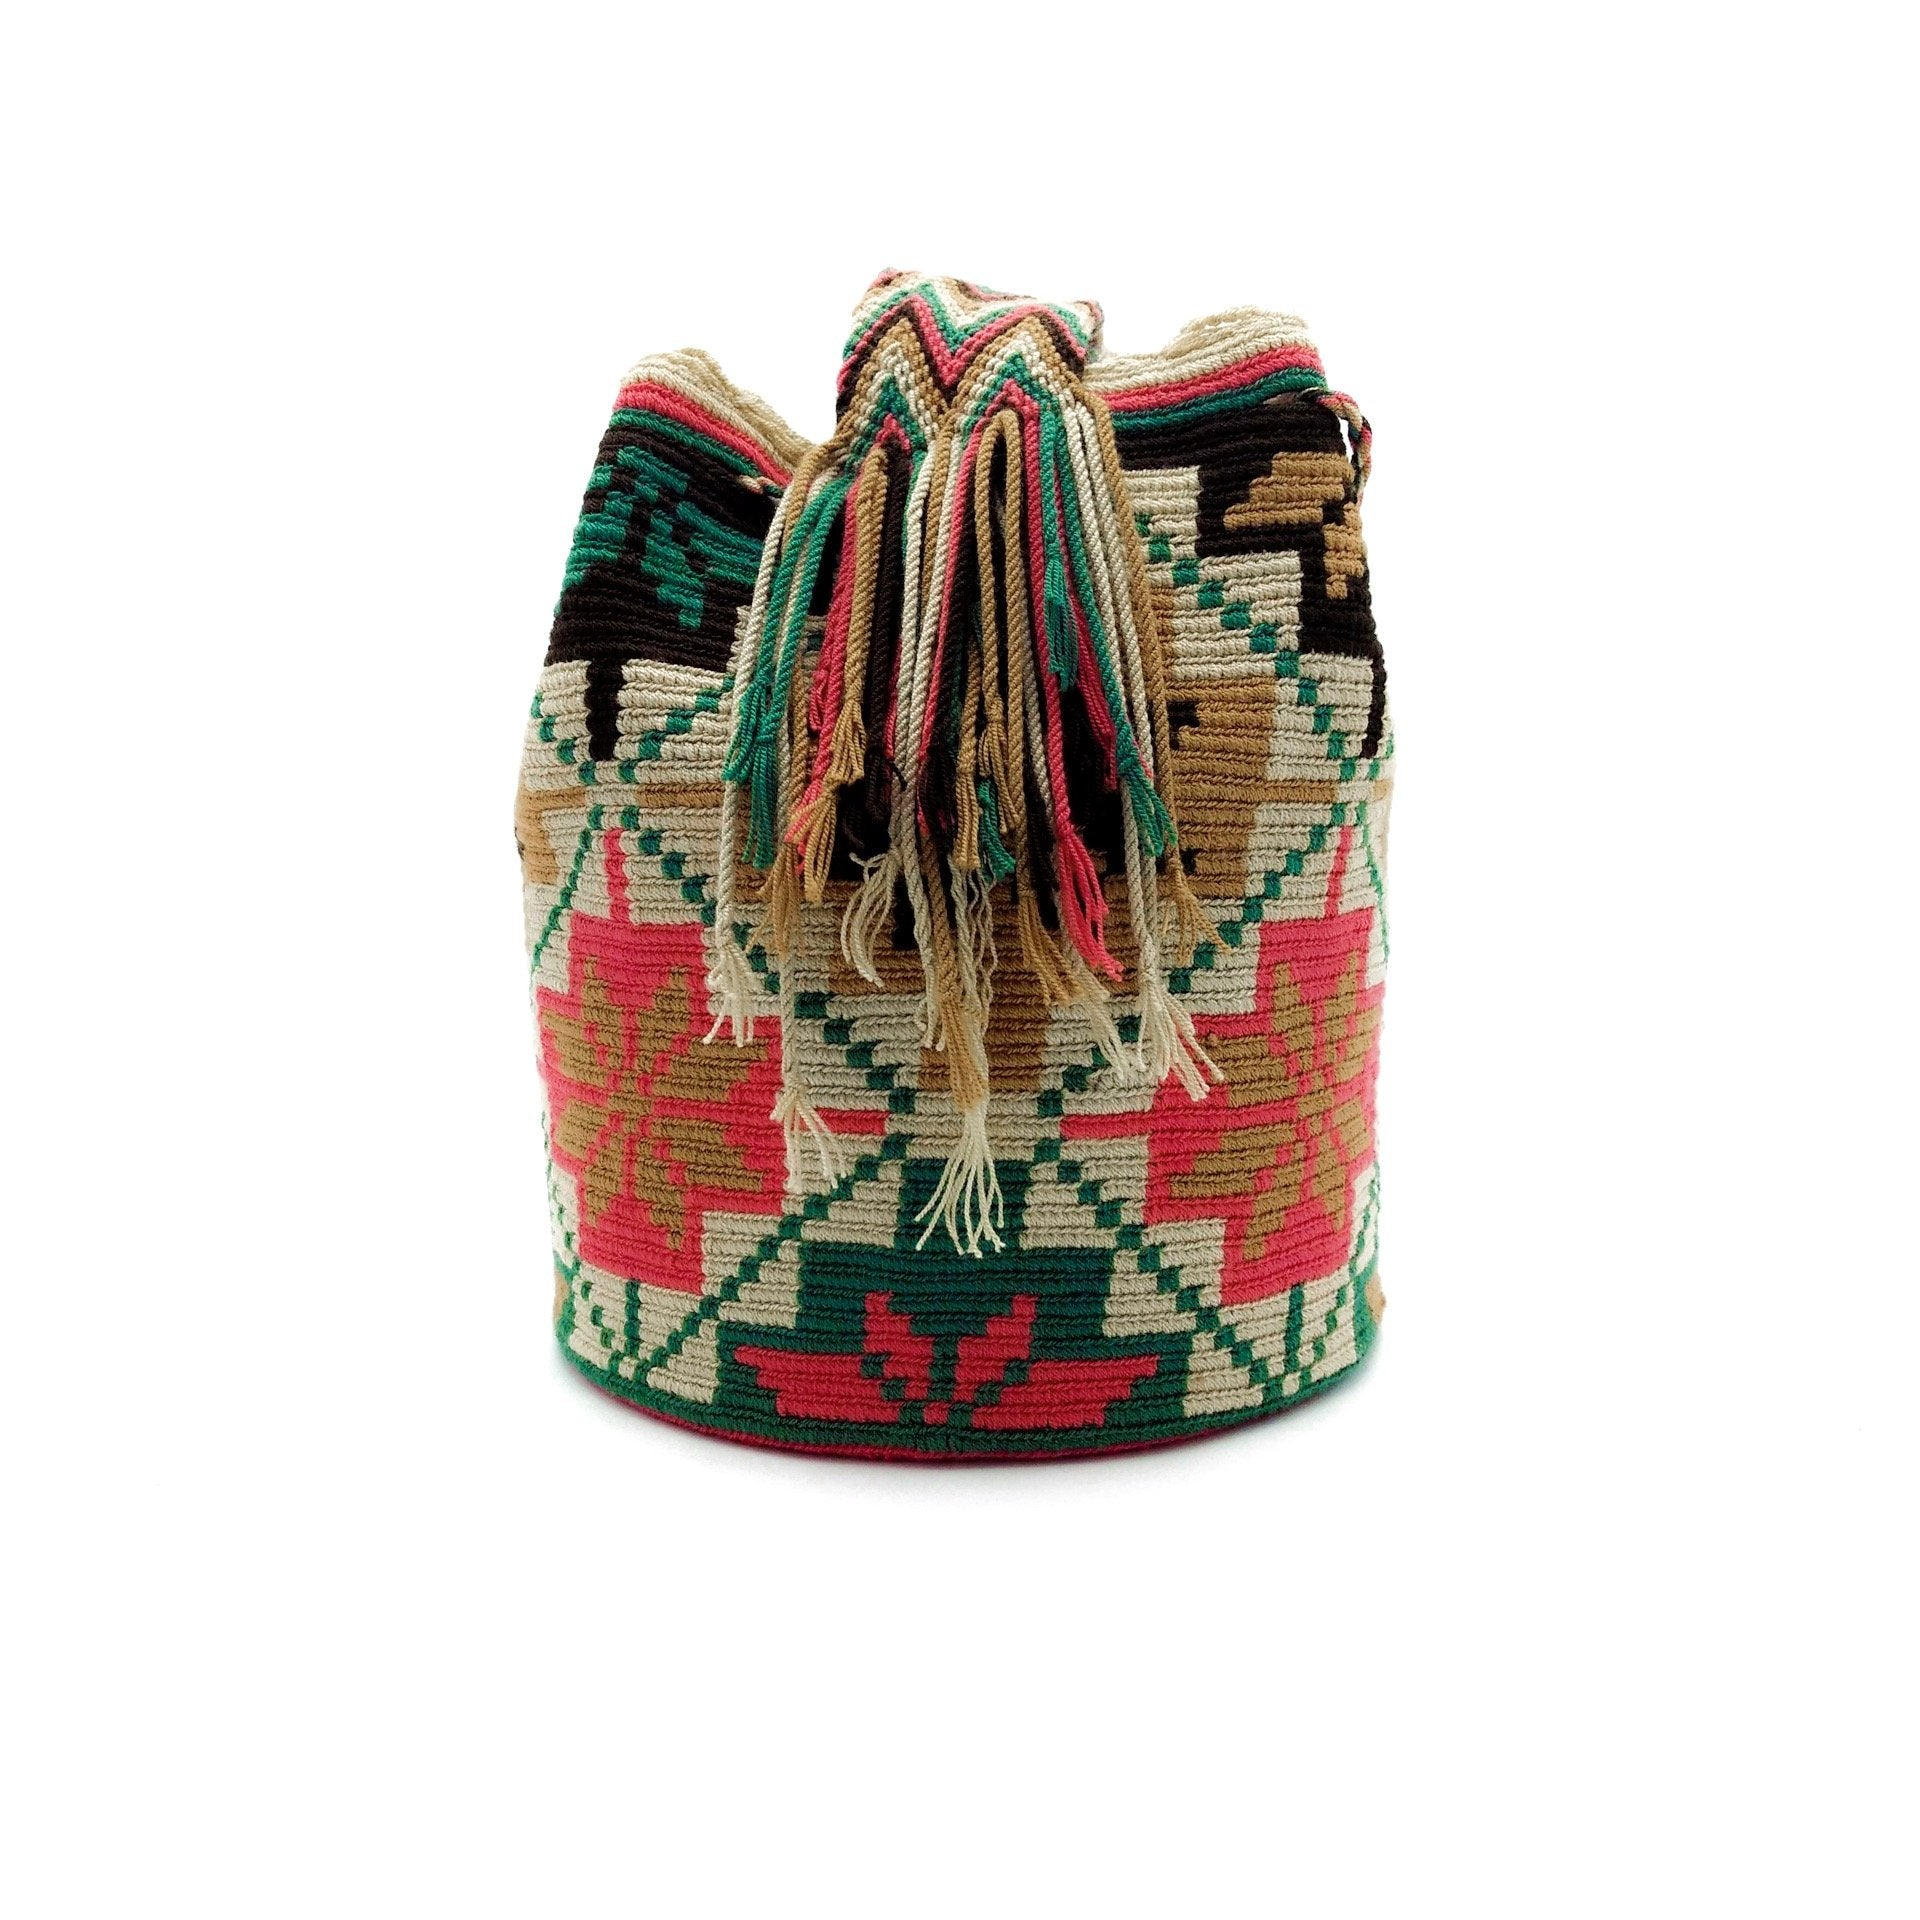 Side view of joyful flowers Wayuu Mochila Bag with a great combination of earthy colors such as Whey, Emerald-Green, Blush-Pink, Light-Brown, and Brown.